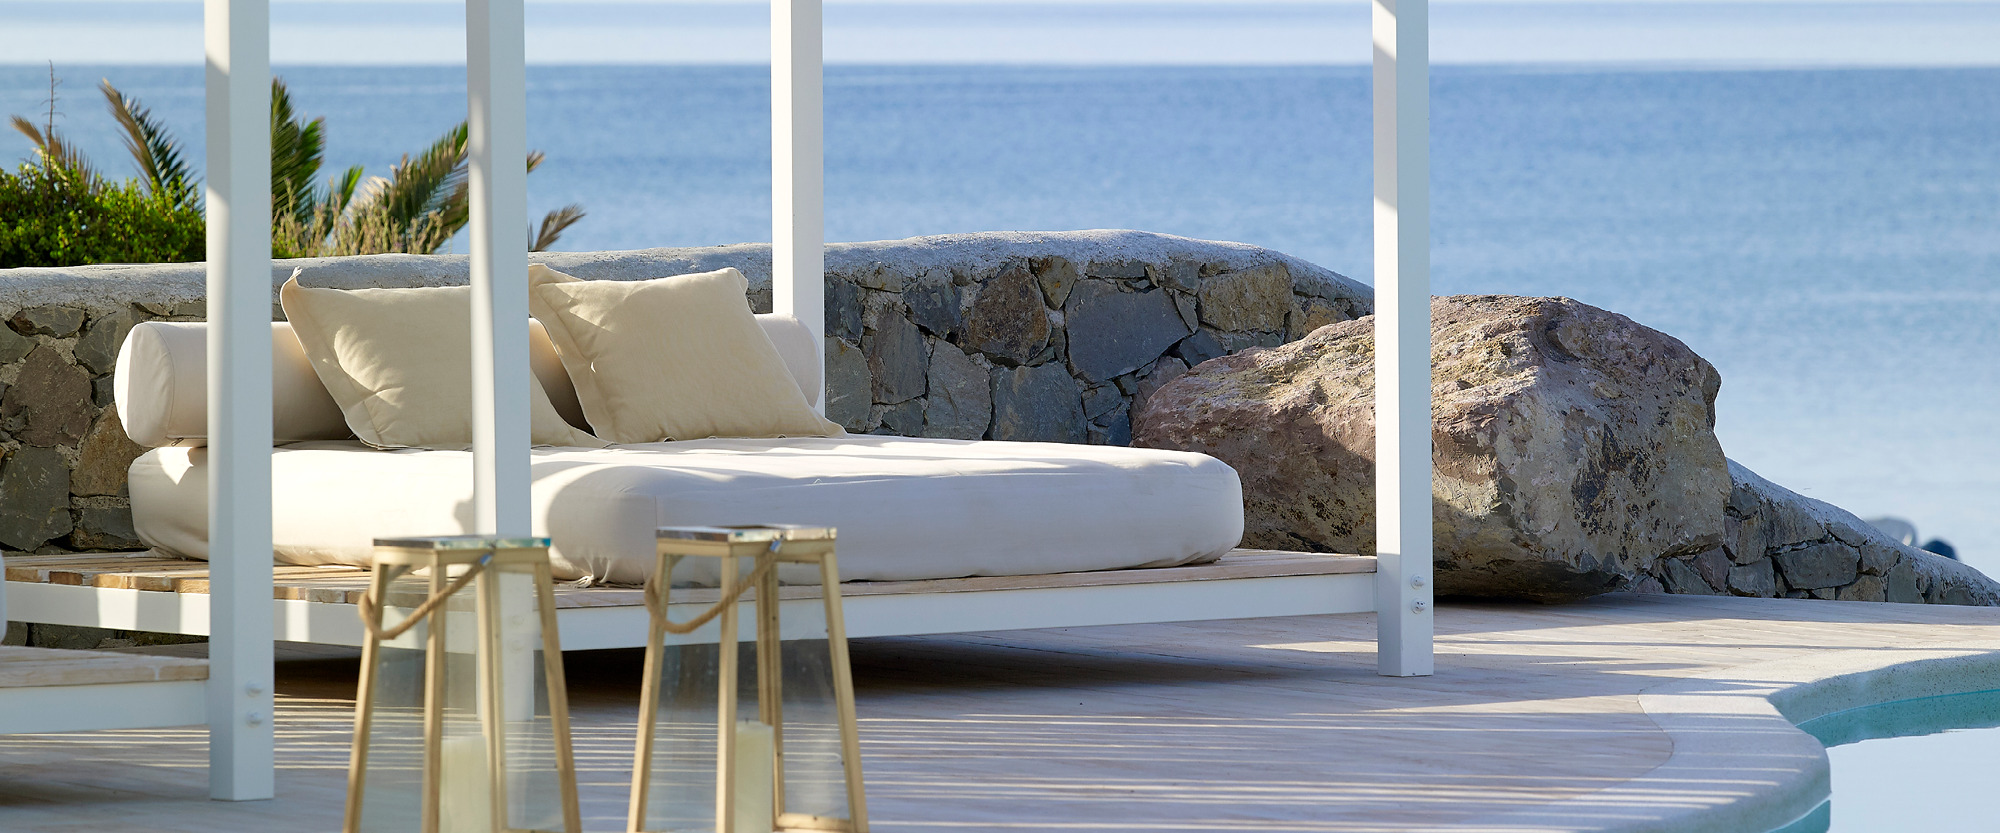 Sundbeds_and_swimming_pool_Artemis_Deluxe_Rooms_Milos_island_Greece_Cyclades1